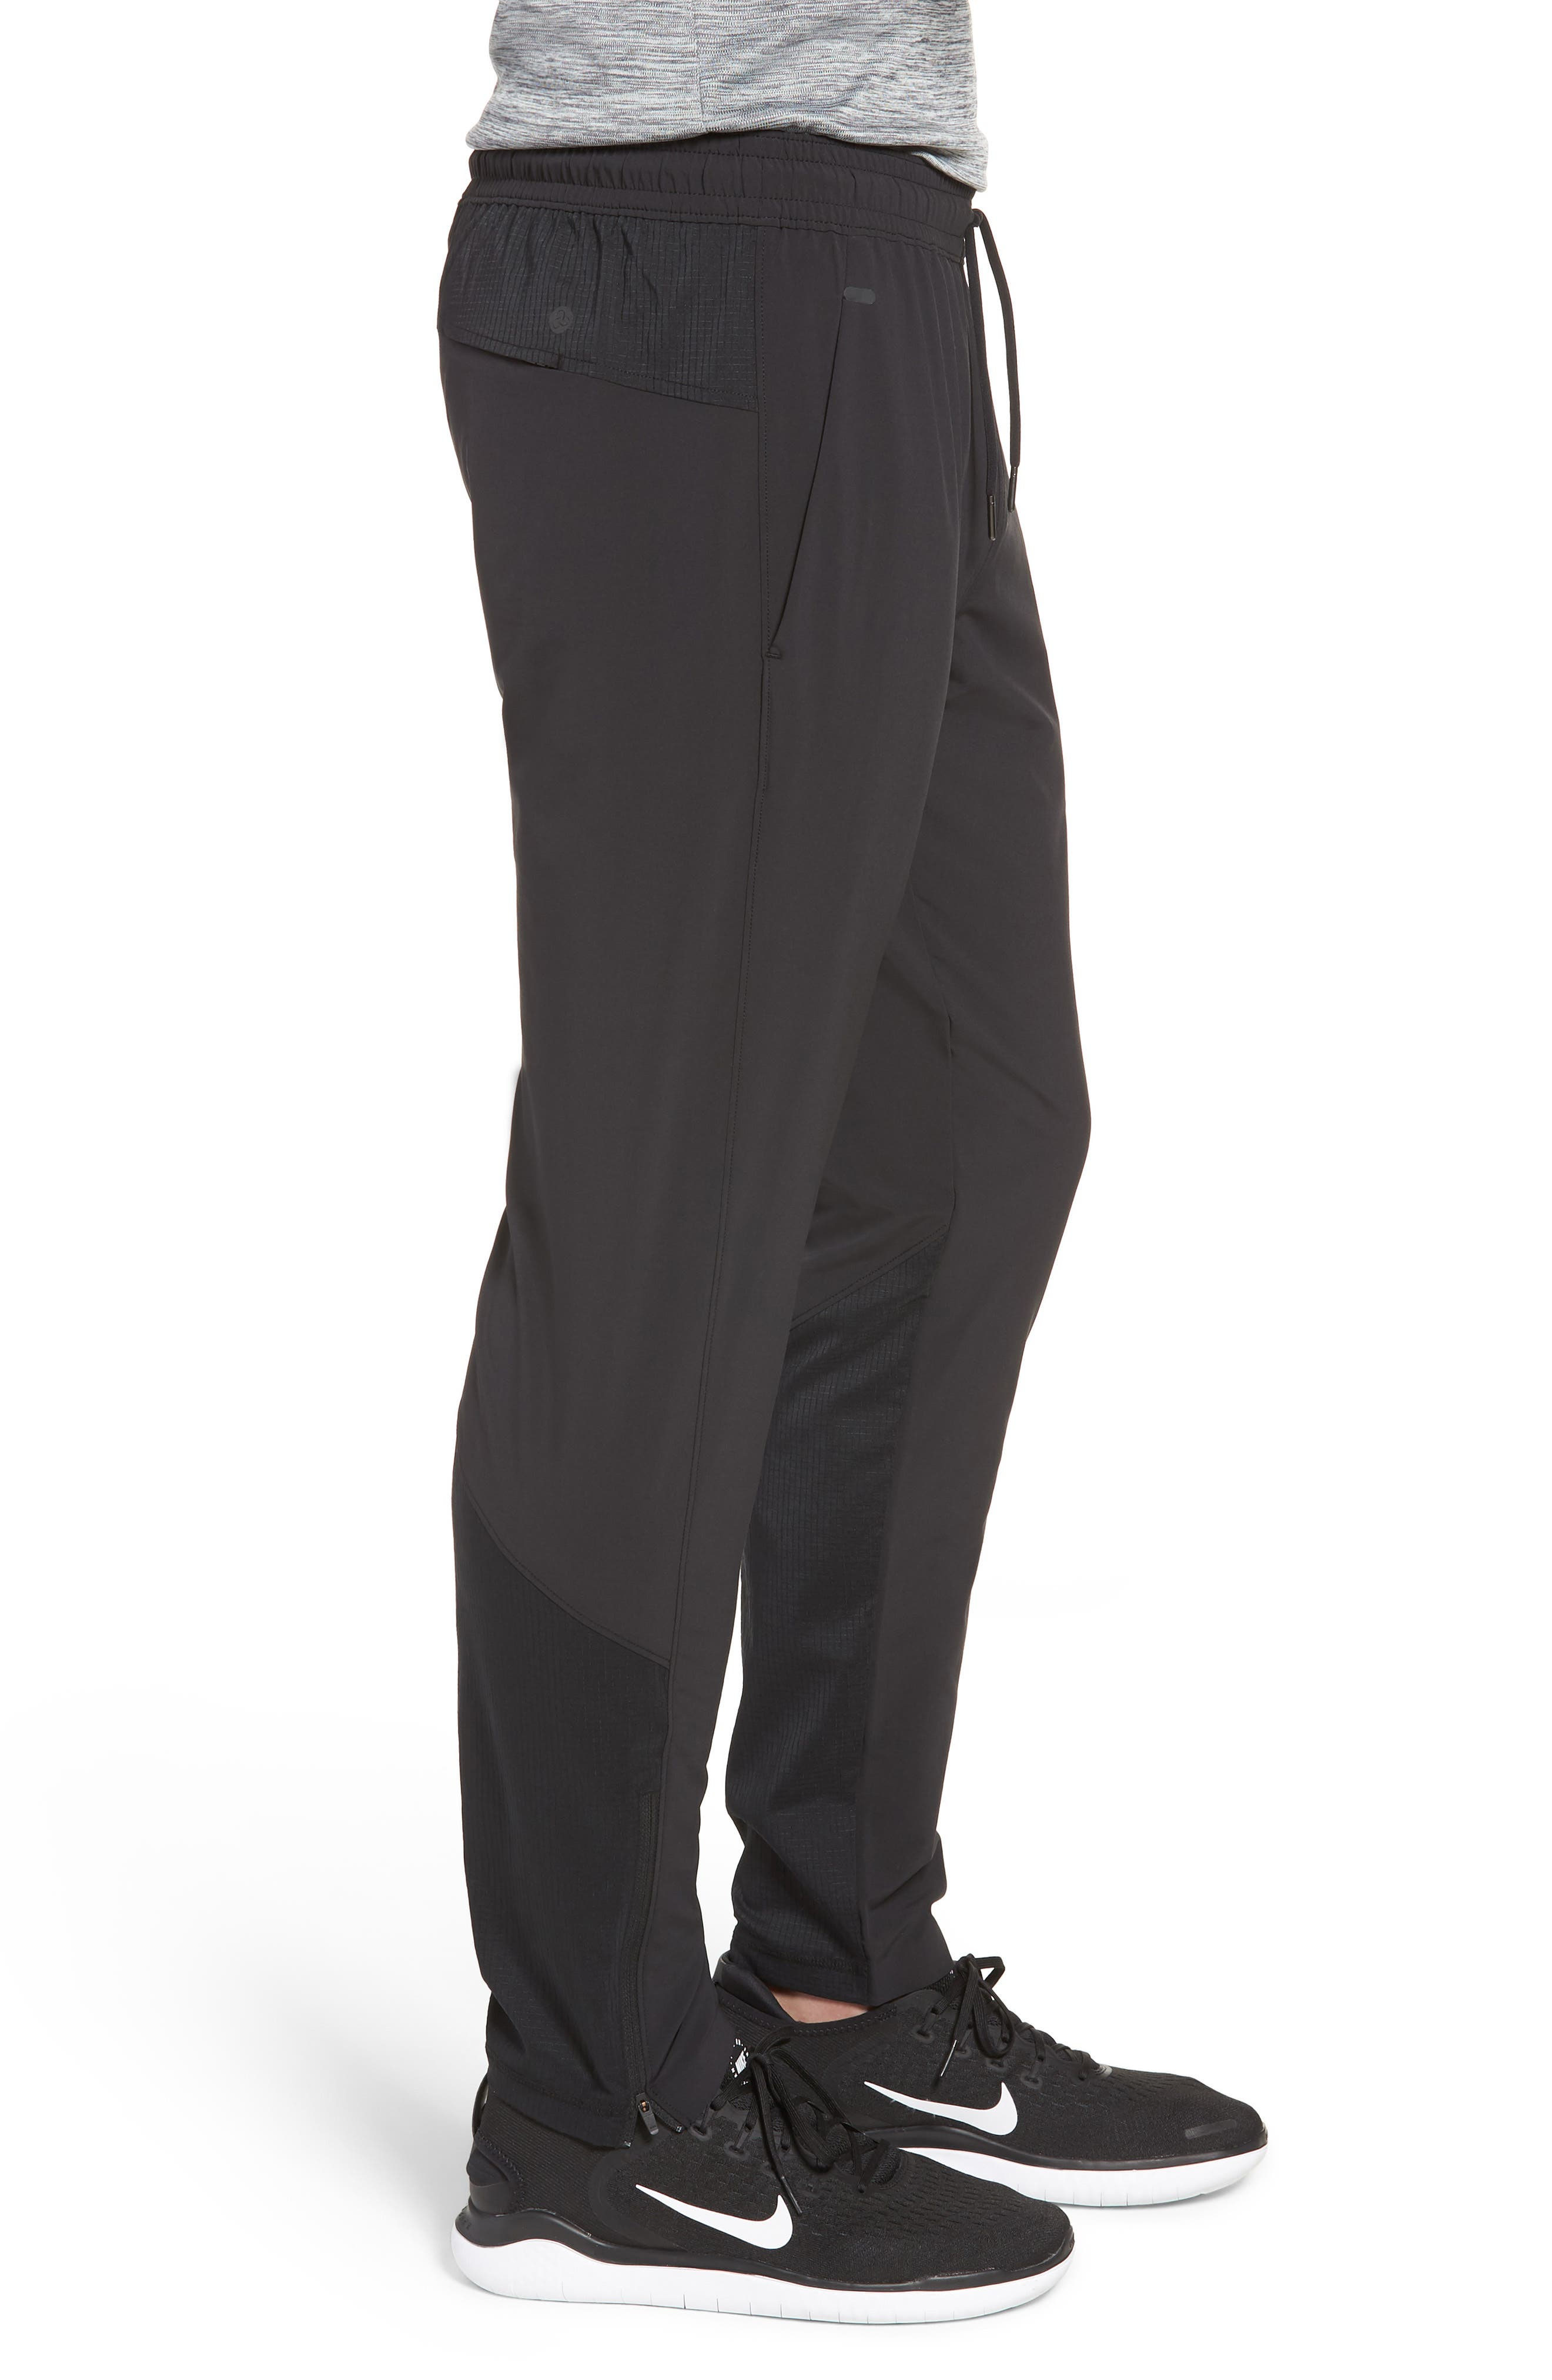 Graphite Tapered Athletic Pants,                             Alternate thumbnail 3, color,                             BLACK